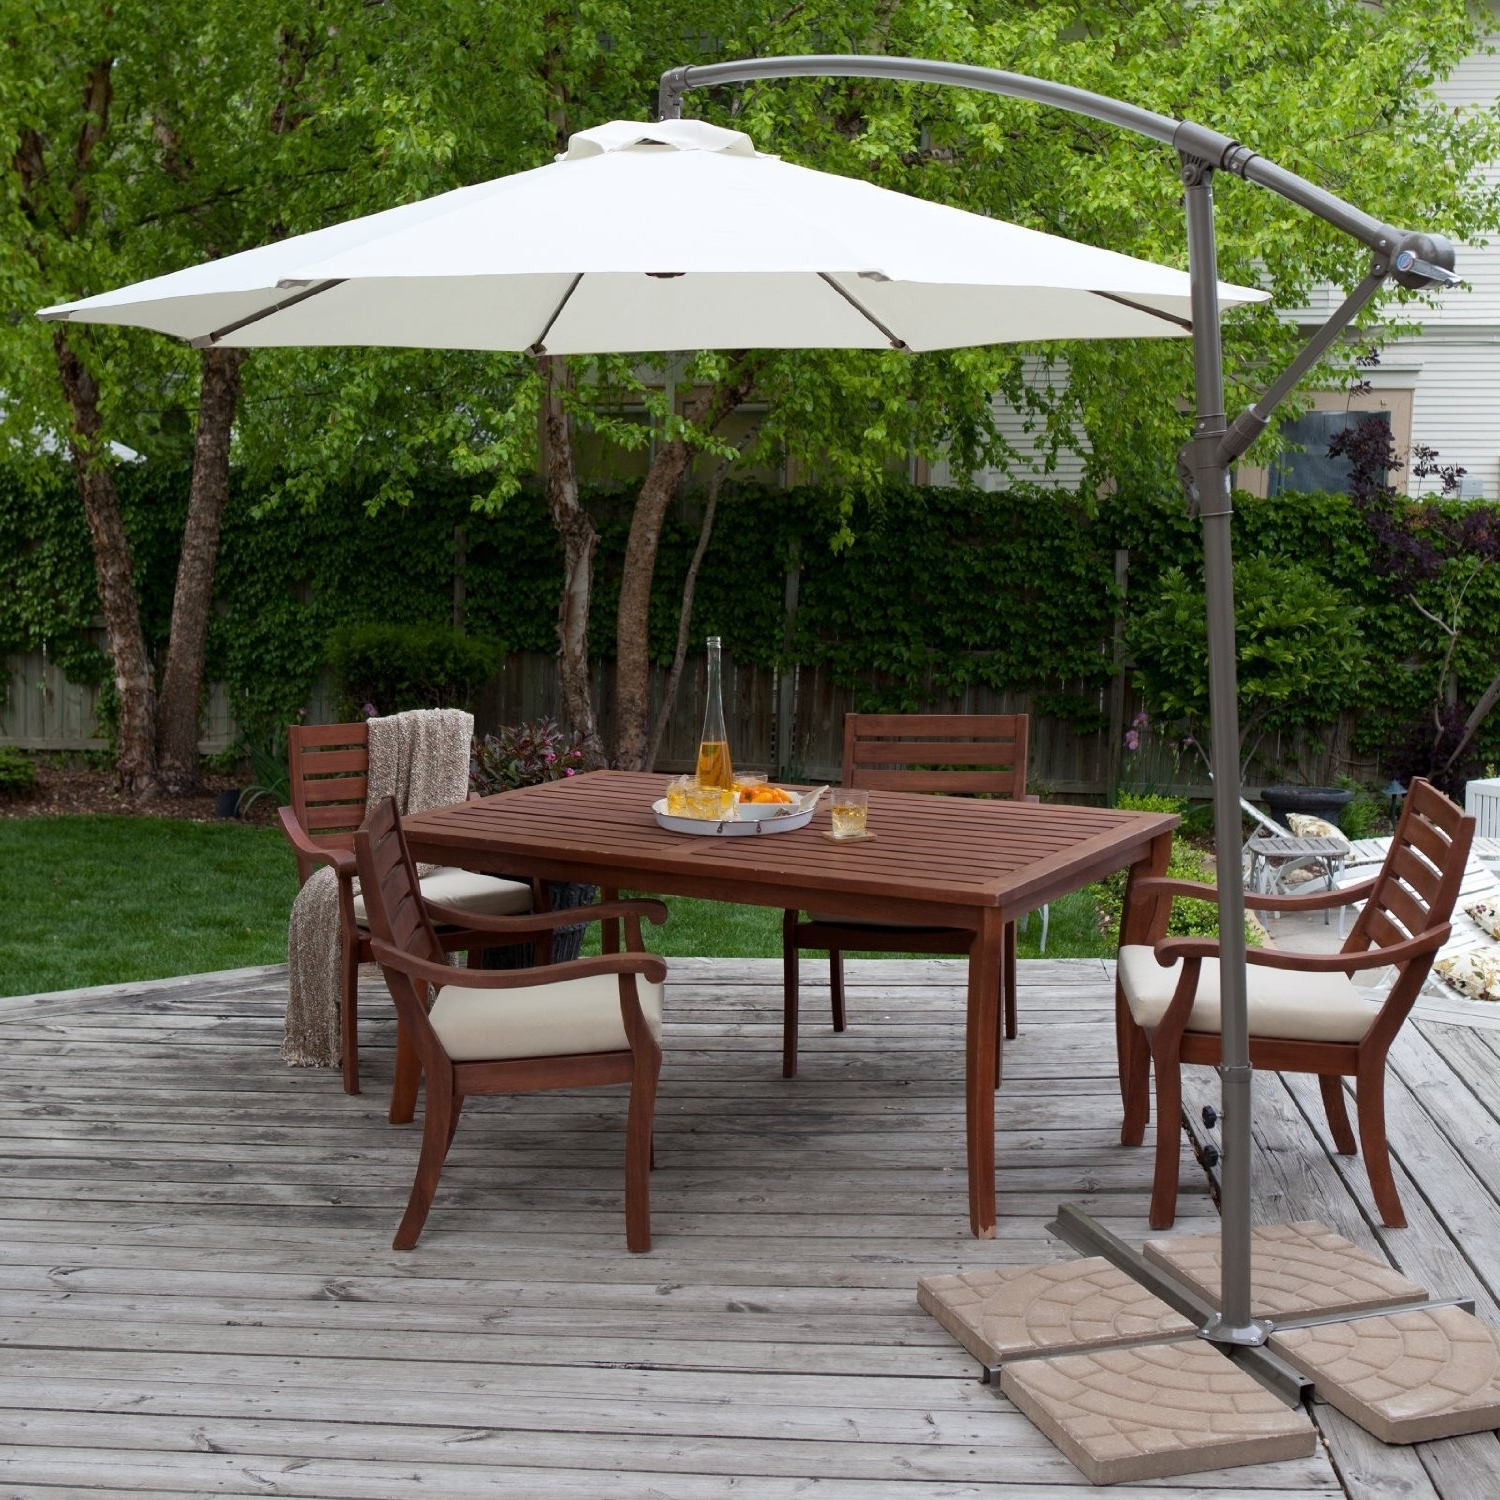 Favorite Patio Dining Umbrellas Within Inspirations: Offset Umbrella Clearance For Appealing Patio (View 5 of 20)